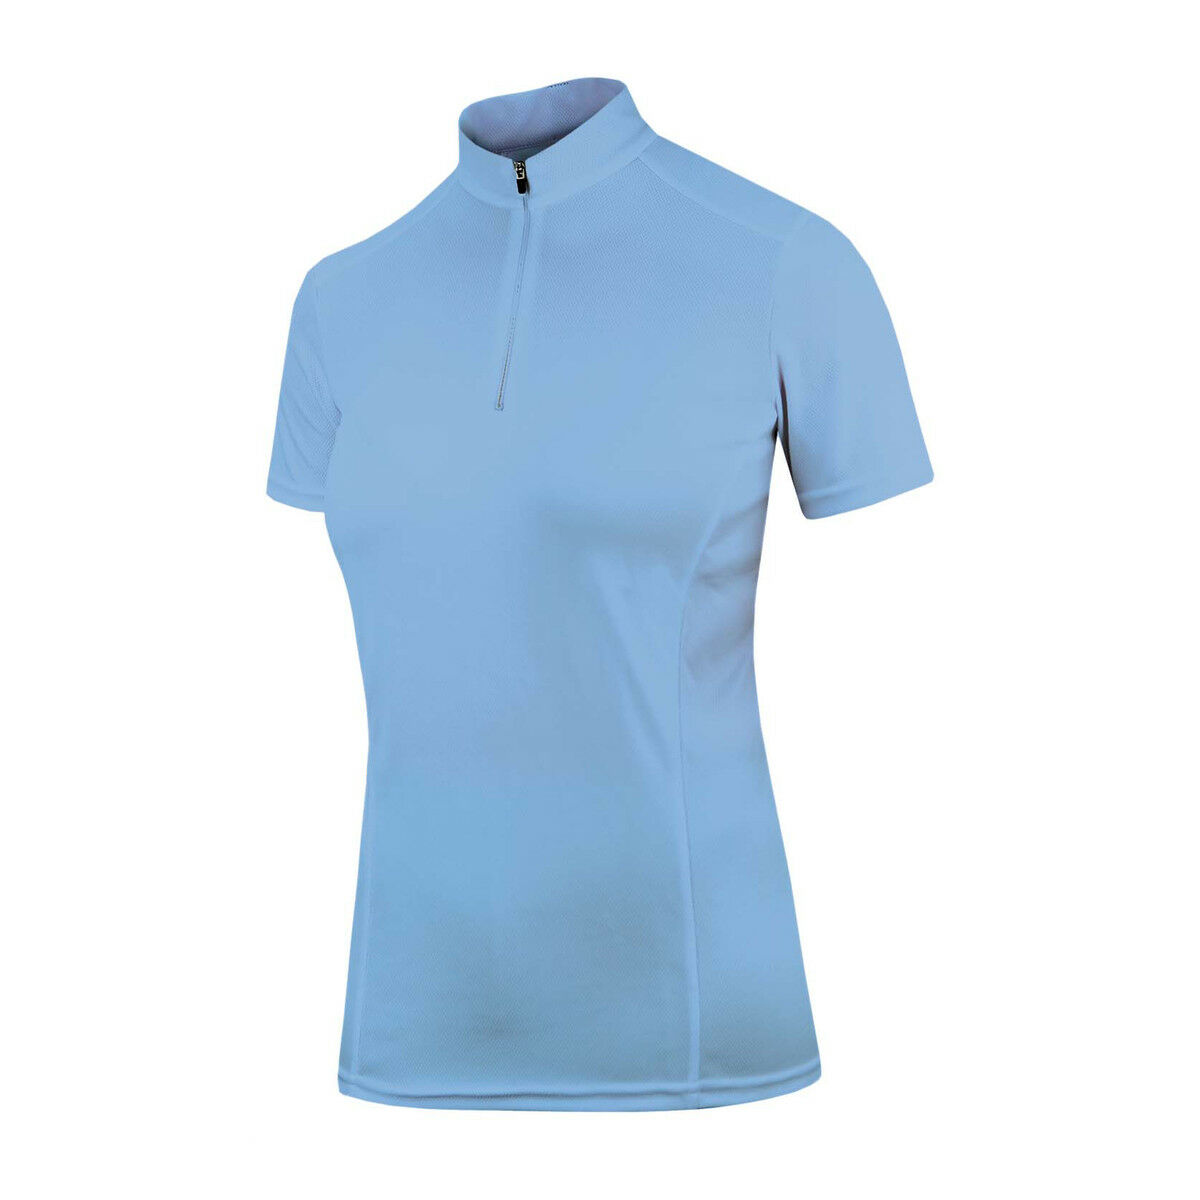 Irideon CoolDown IceFil Short Sleeve Jersey equitazione Shirt with UV Prossoection